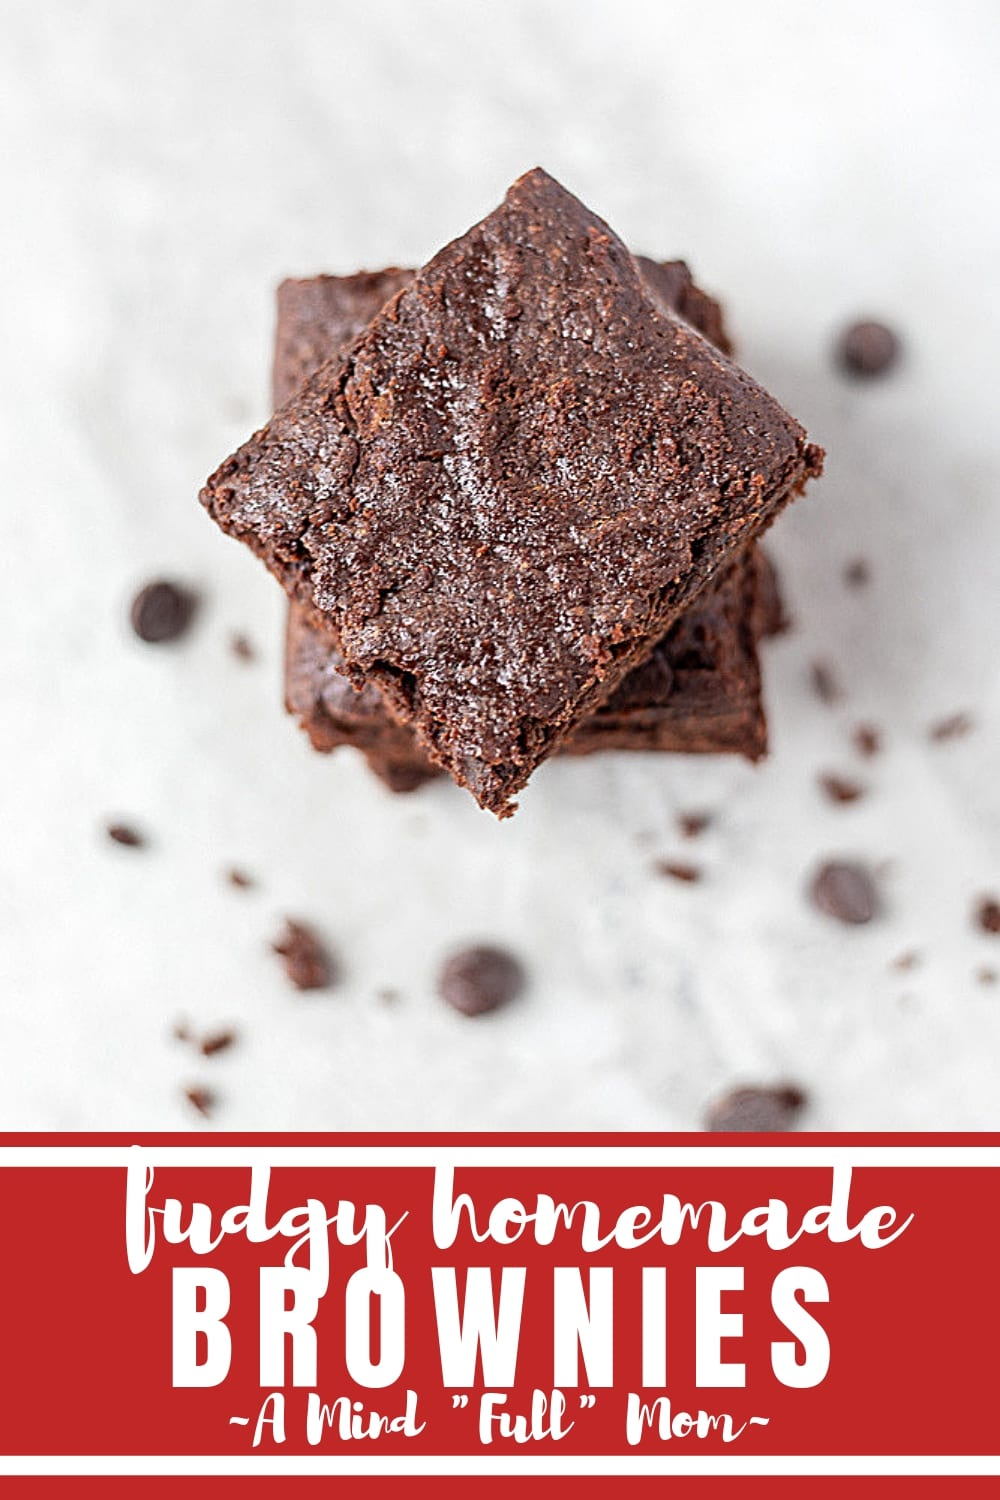 Ditch the boxed brownie mix, as this recipe for Easy Homemade Brownies makes fudgy, soft, moist brownies full of rich chocolate flavor! #brownies #fromscratch